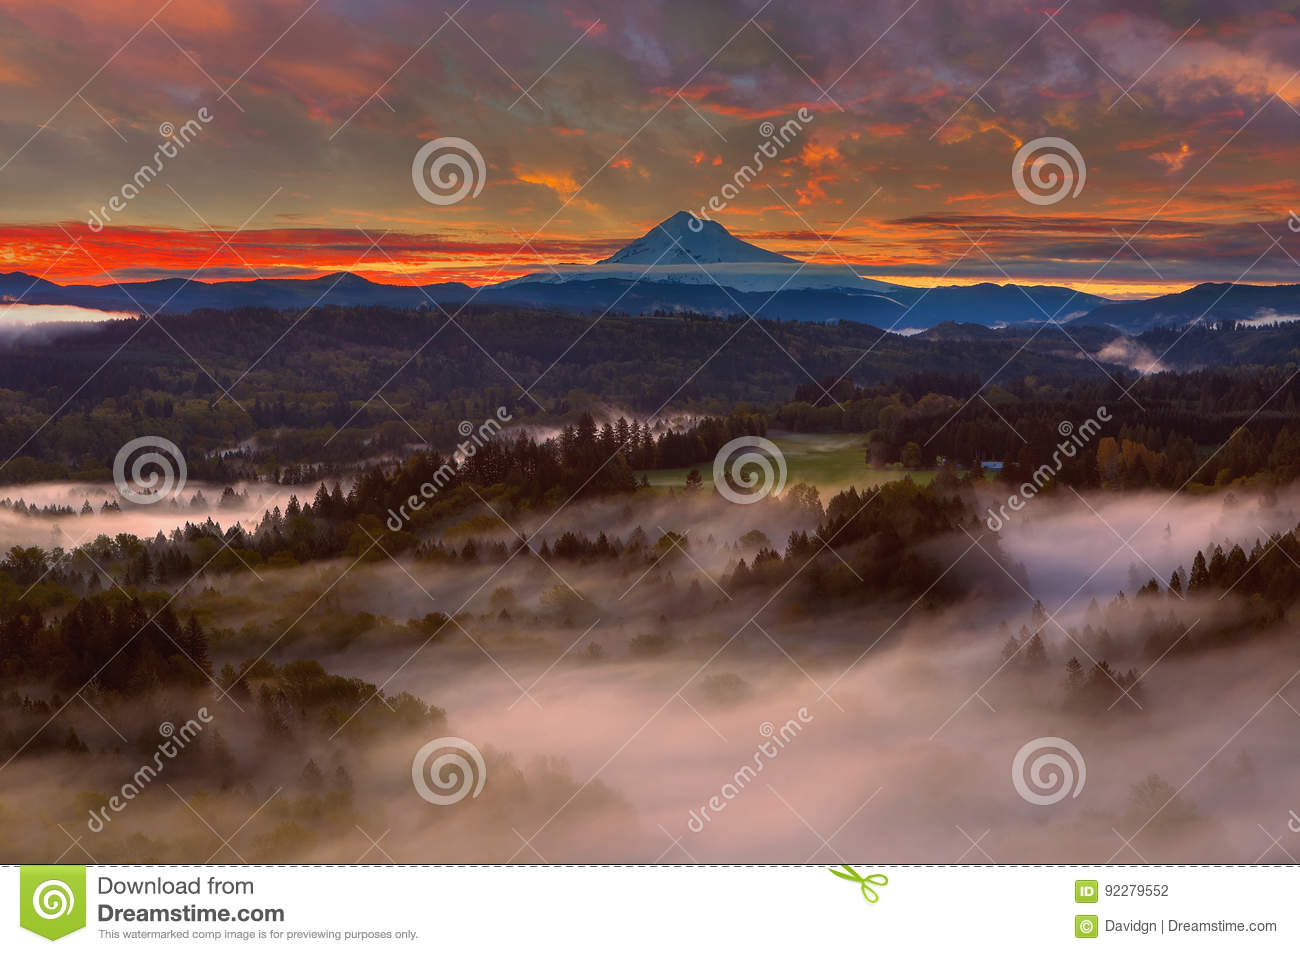 Sunrise over Mount Hood and Sandy River Valley